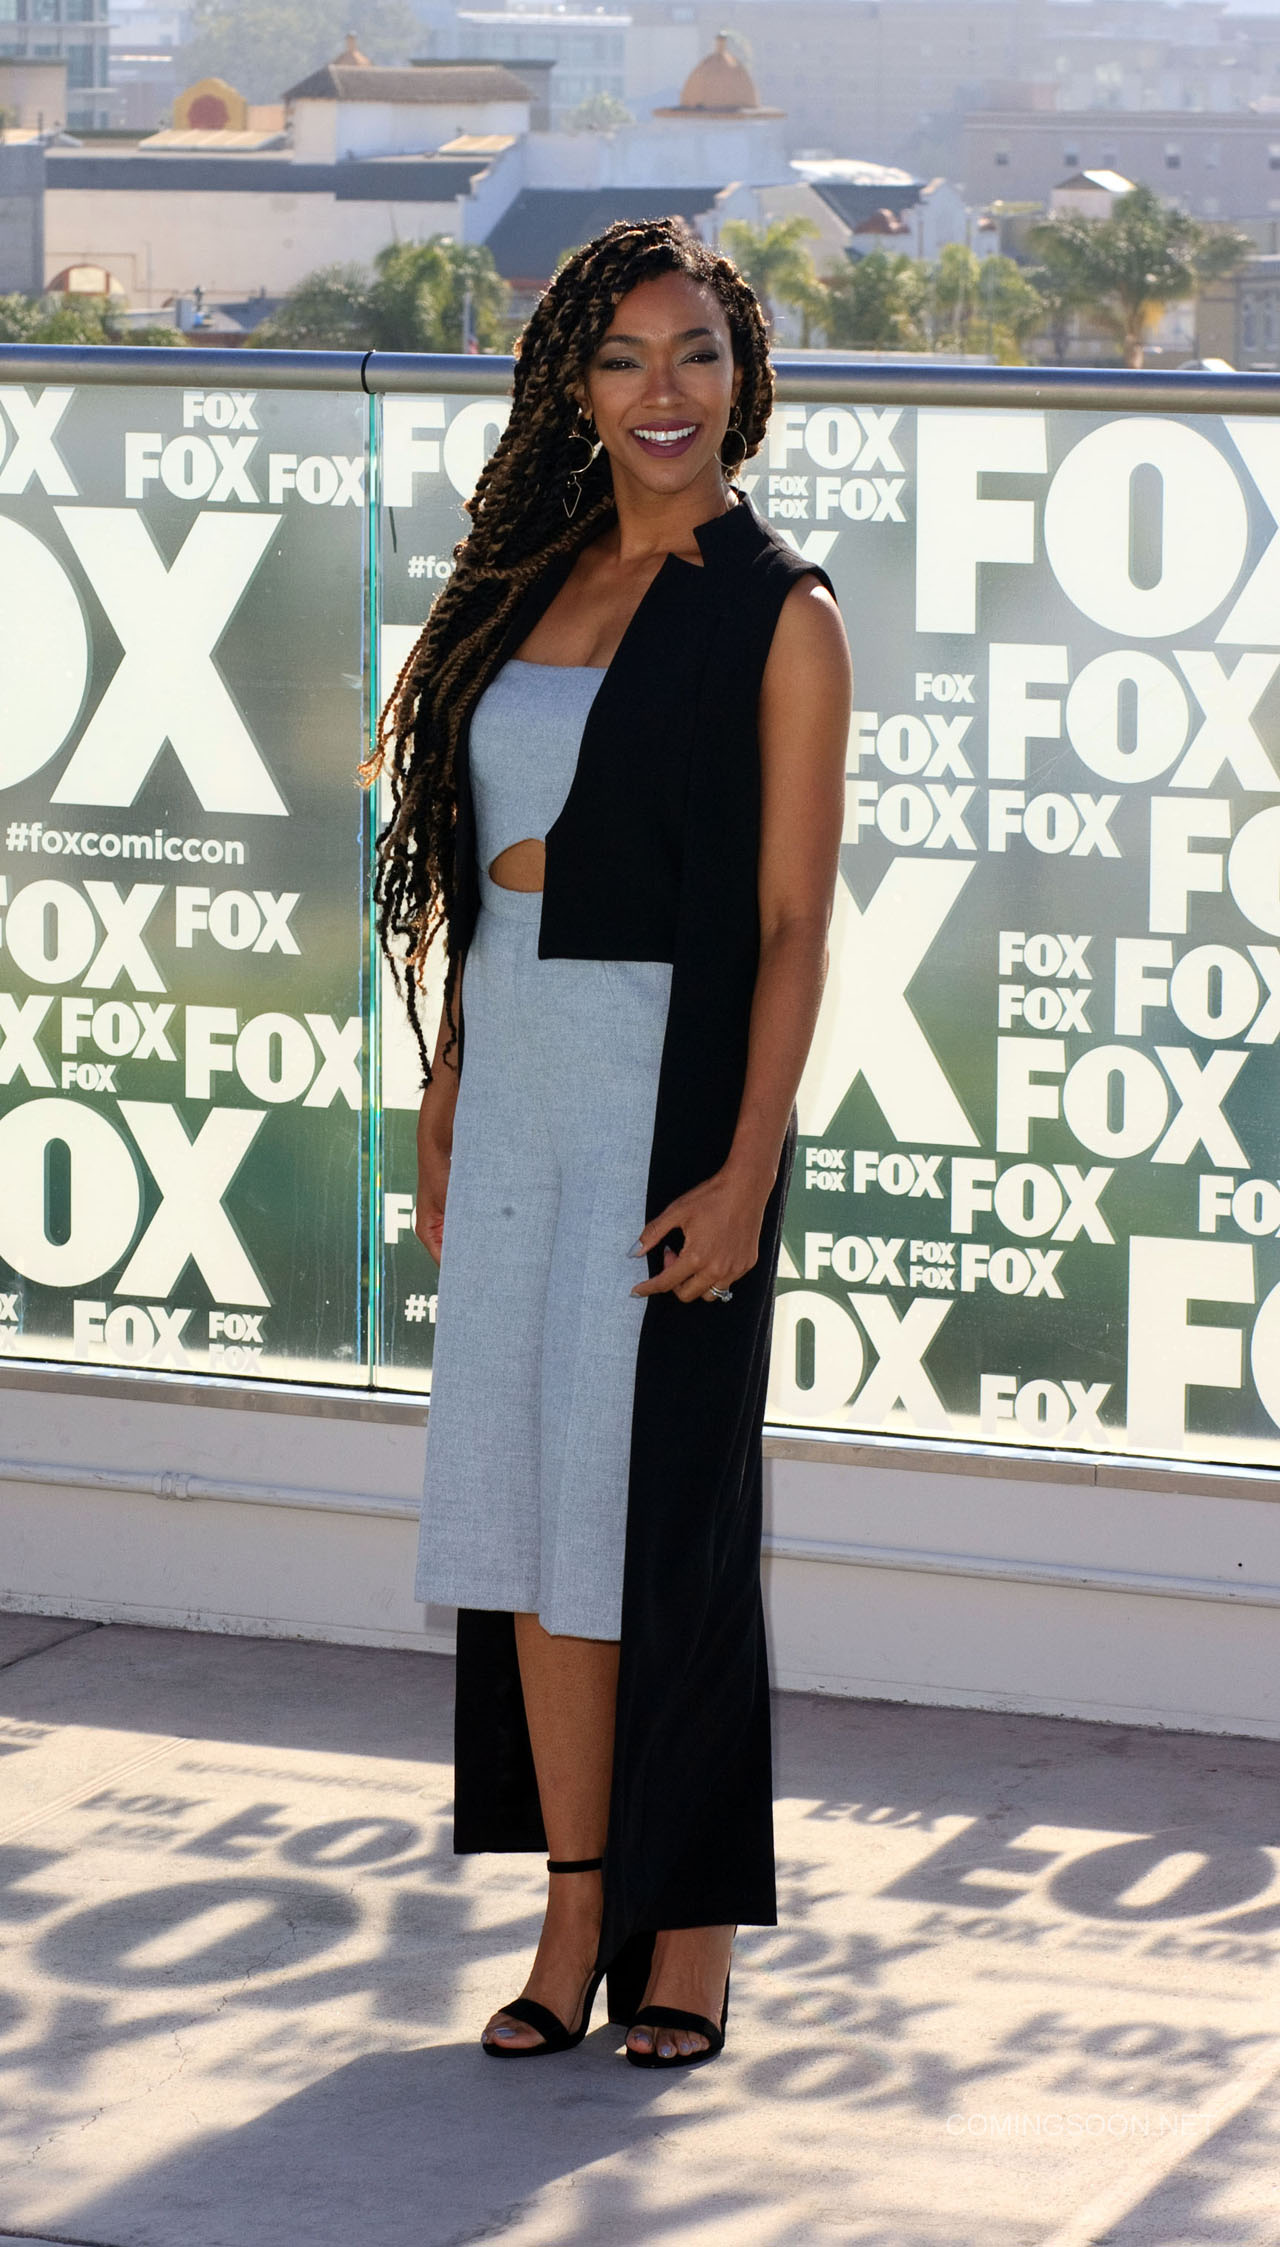 Fox Comic Con breakfast with the cast of Walking Dead and Outcast Featuring: Sonequa Martin-Green Where: San Diego, California, United States When: 22 Jul 2016 Credit: Tony Forte/WENN